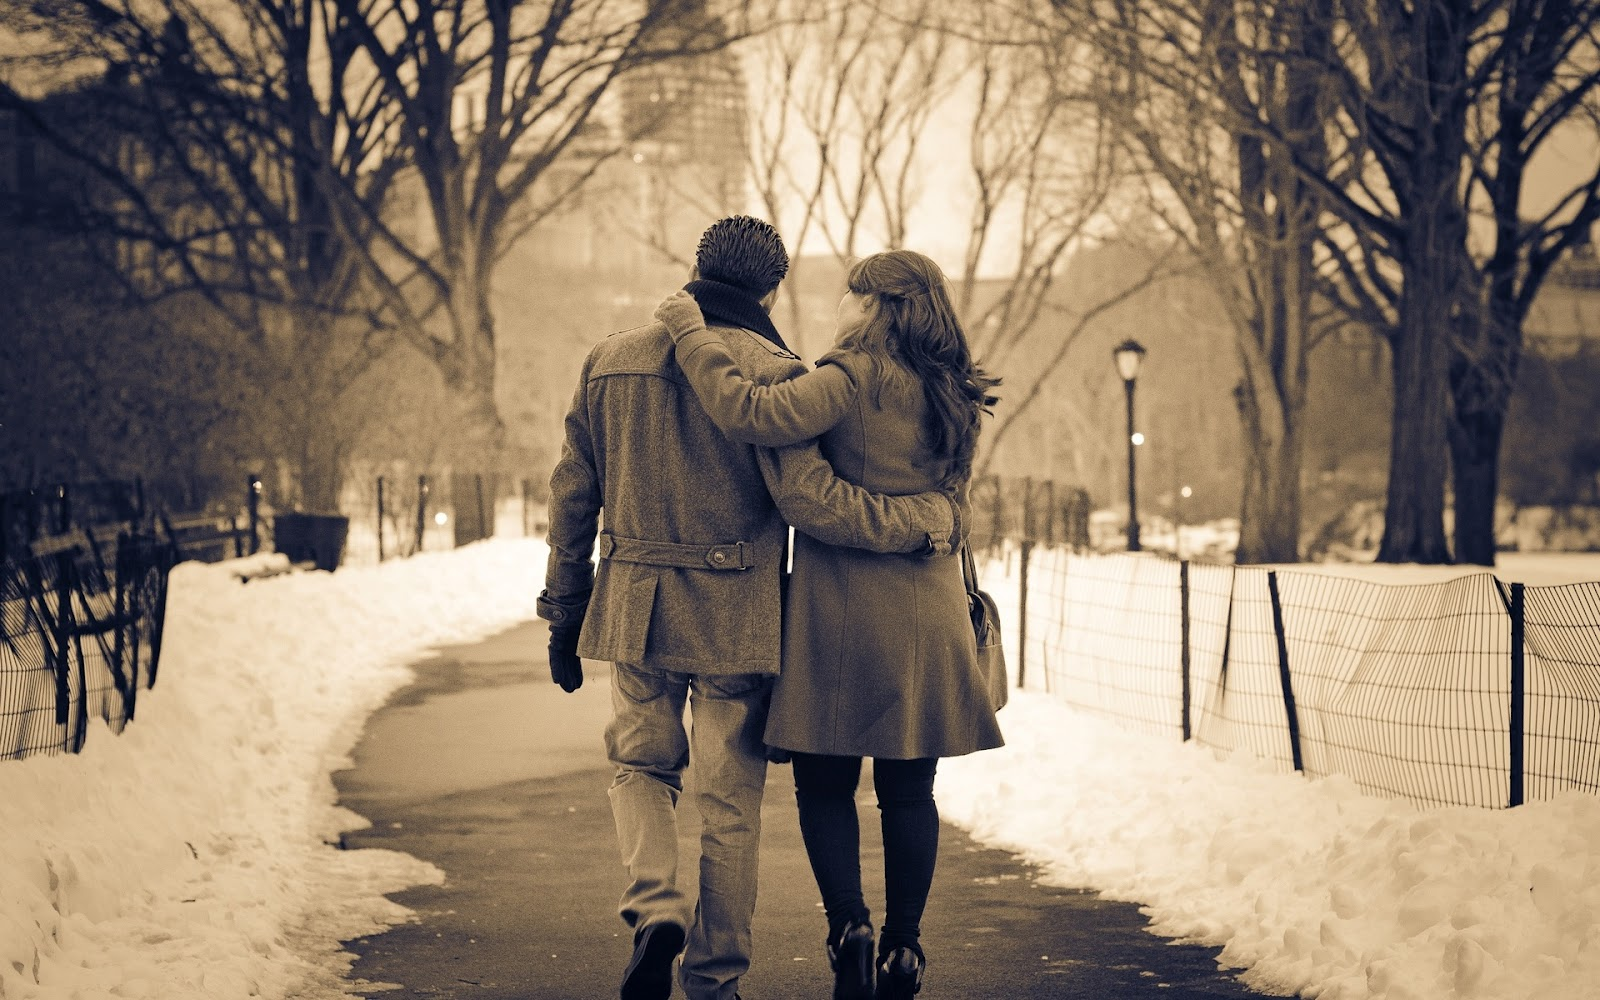 http://3.bp.blogspot.com/-buQeVO9jSNM/T2wBj0kmsrI/AAAAAAAAAMs/uqJ0nl1rFUw/s1600/Wallpaper-winter-garden-a-park-a-couple-in-love-girl-boy-mood.jpg